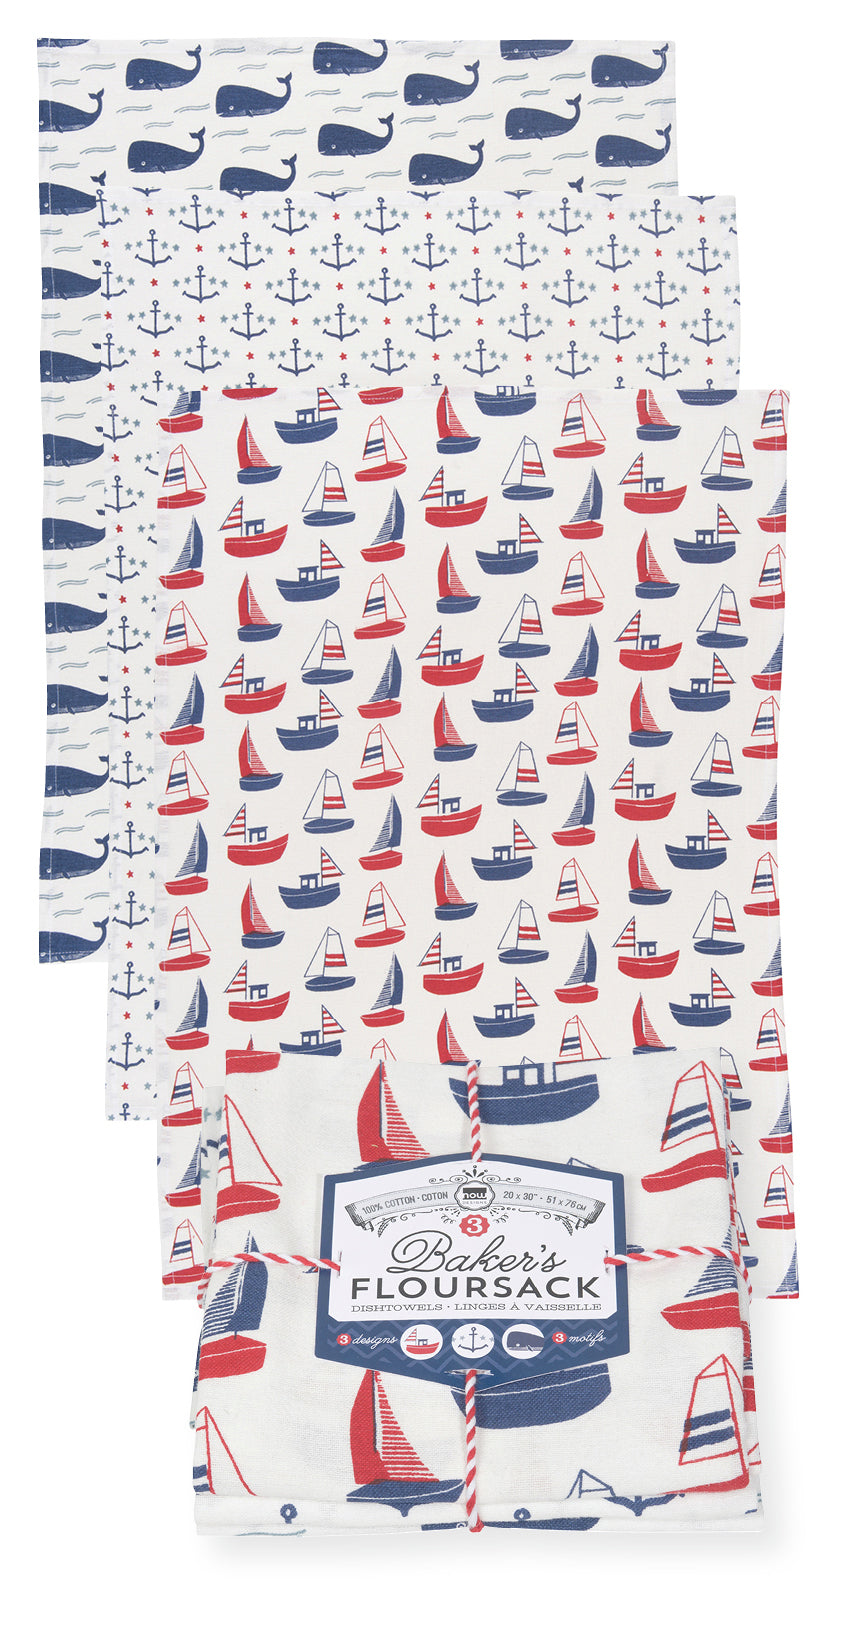 Floursack Tea Towel Set - Ahoy Matey!